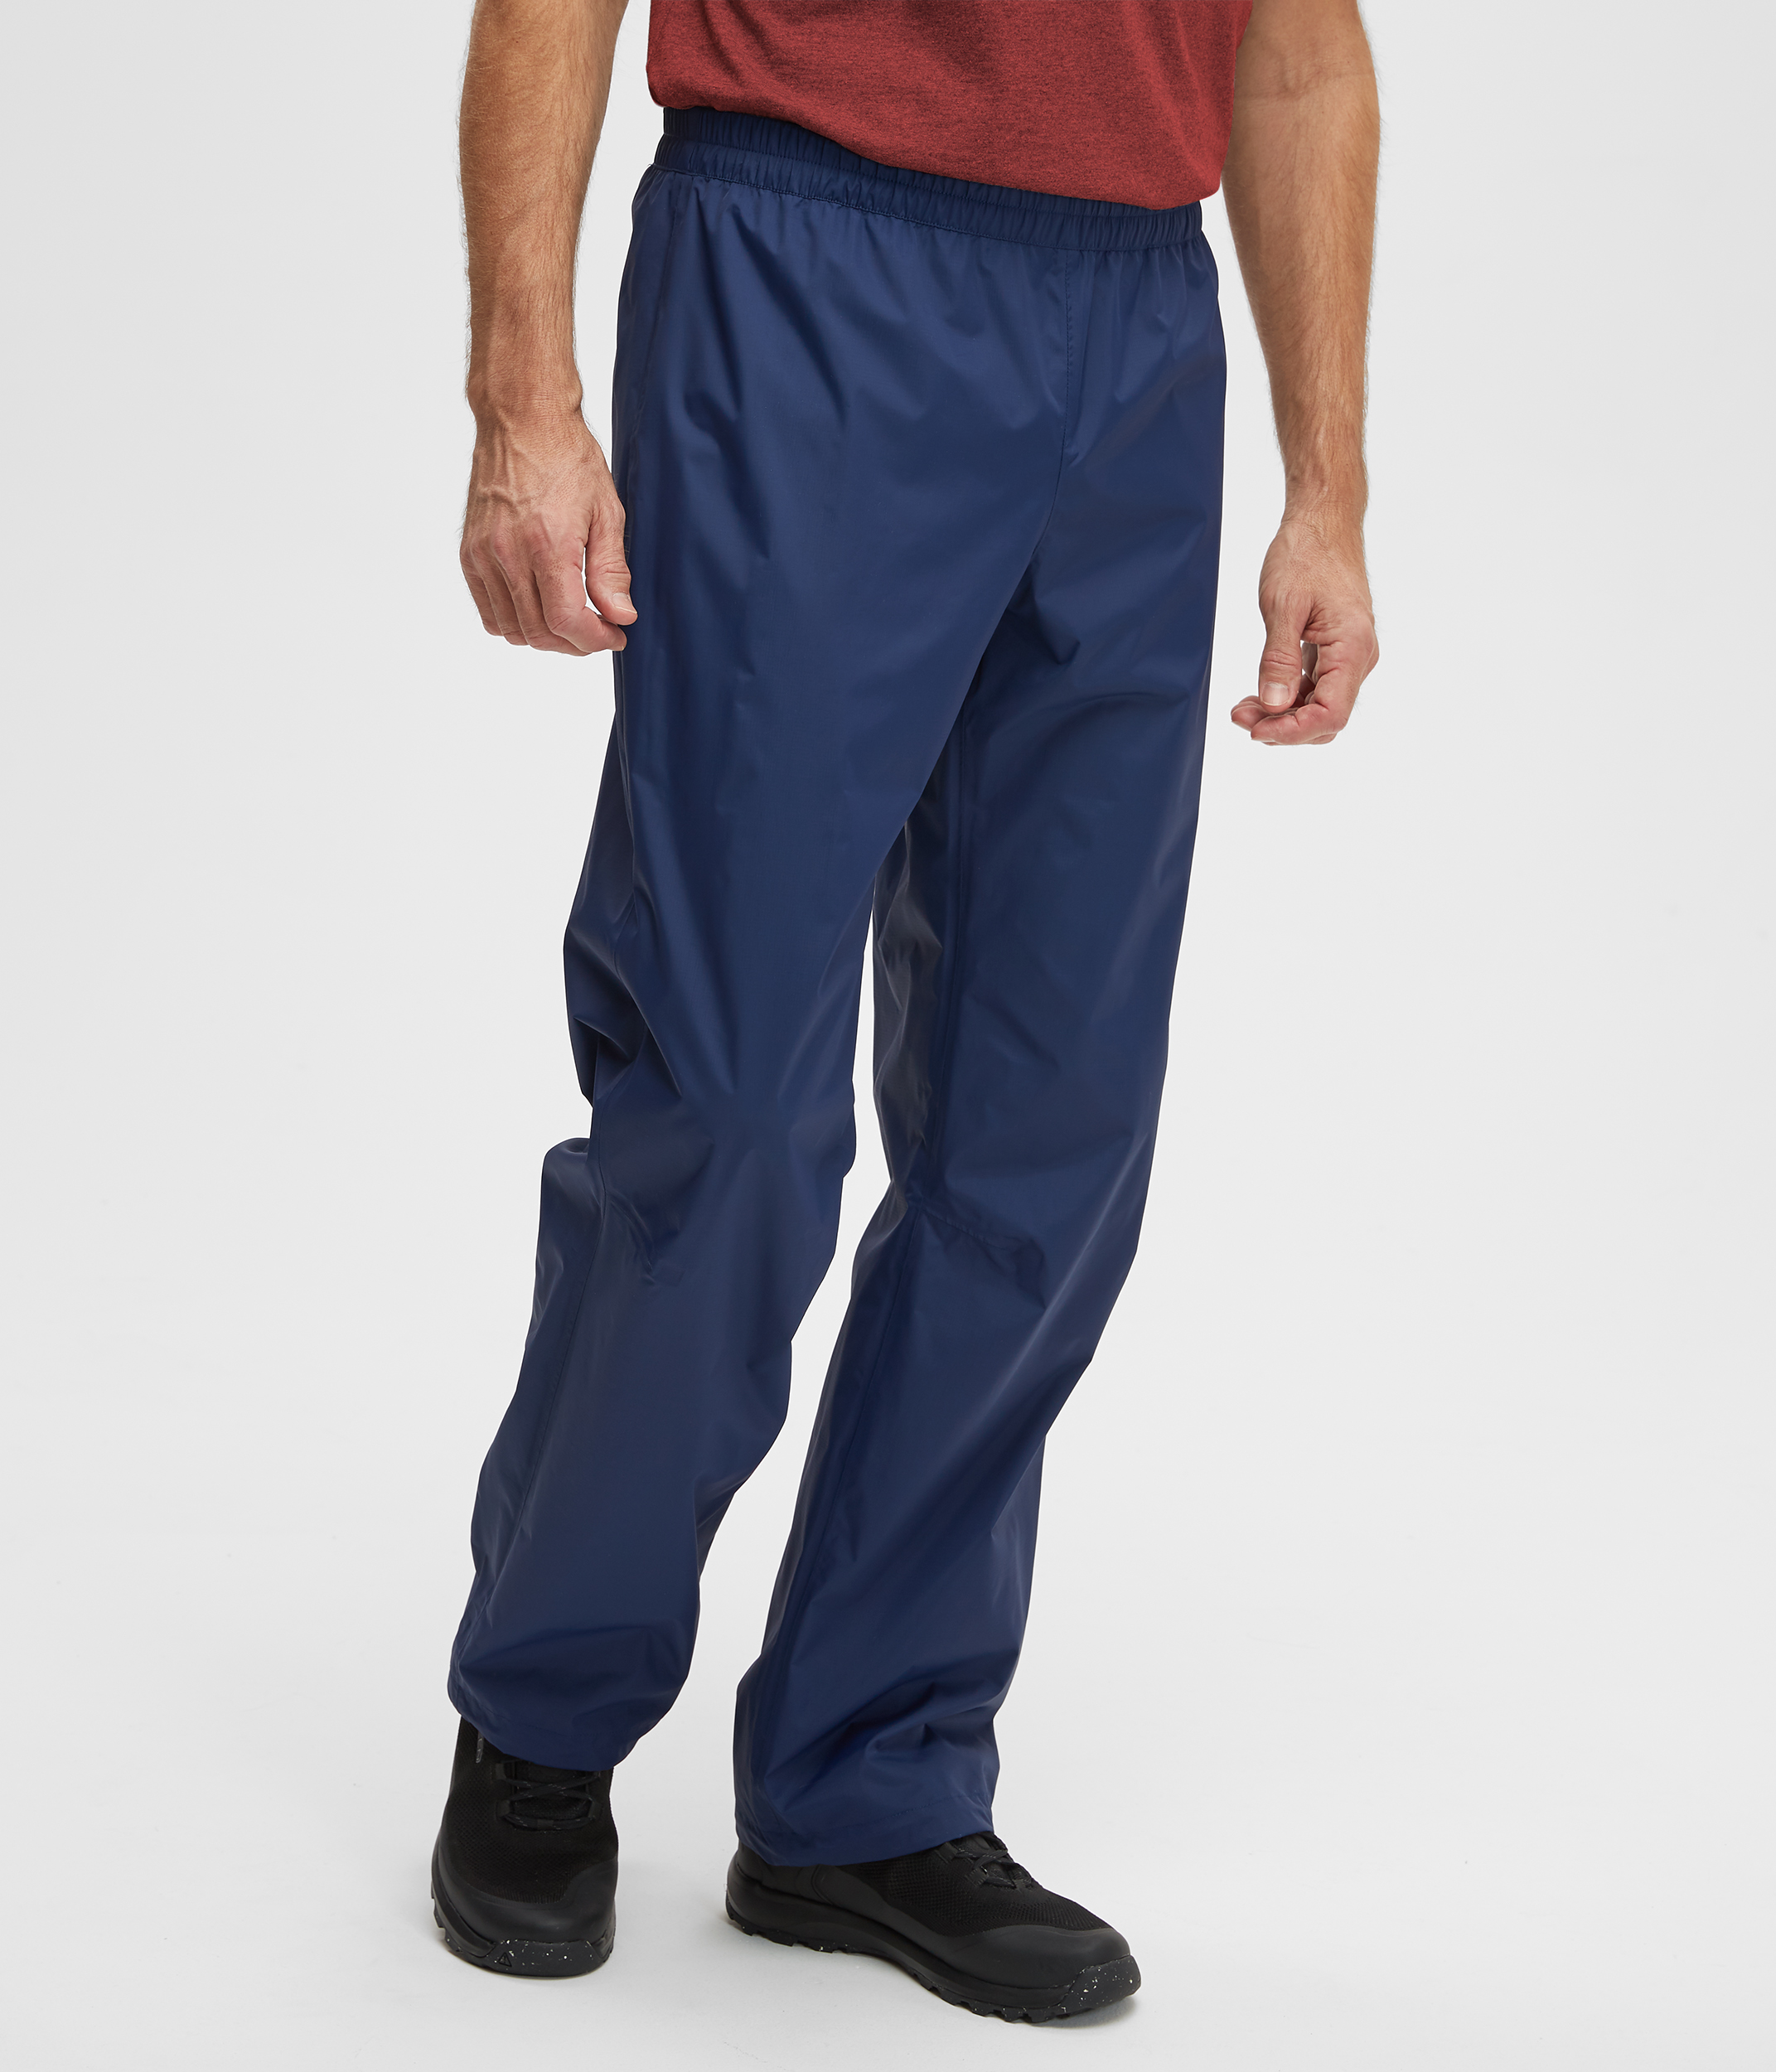 cb44ce9cb3eb1 Men's Pants | MEC